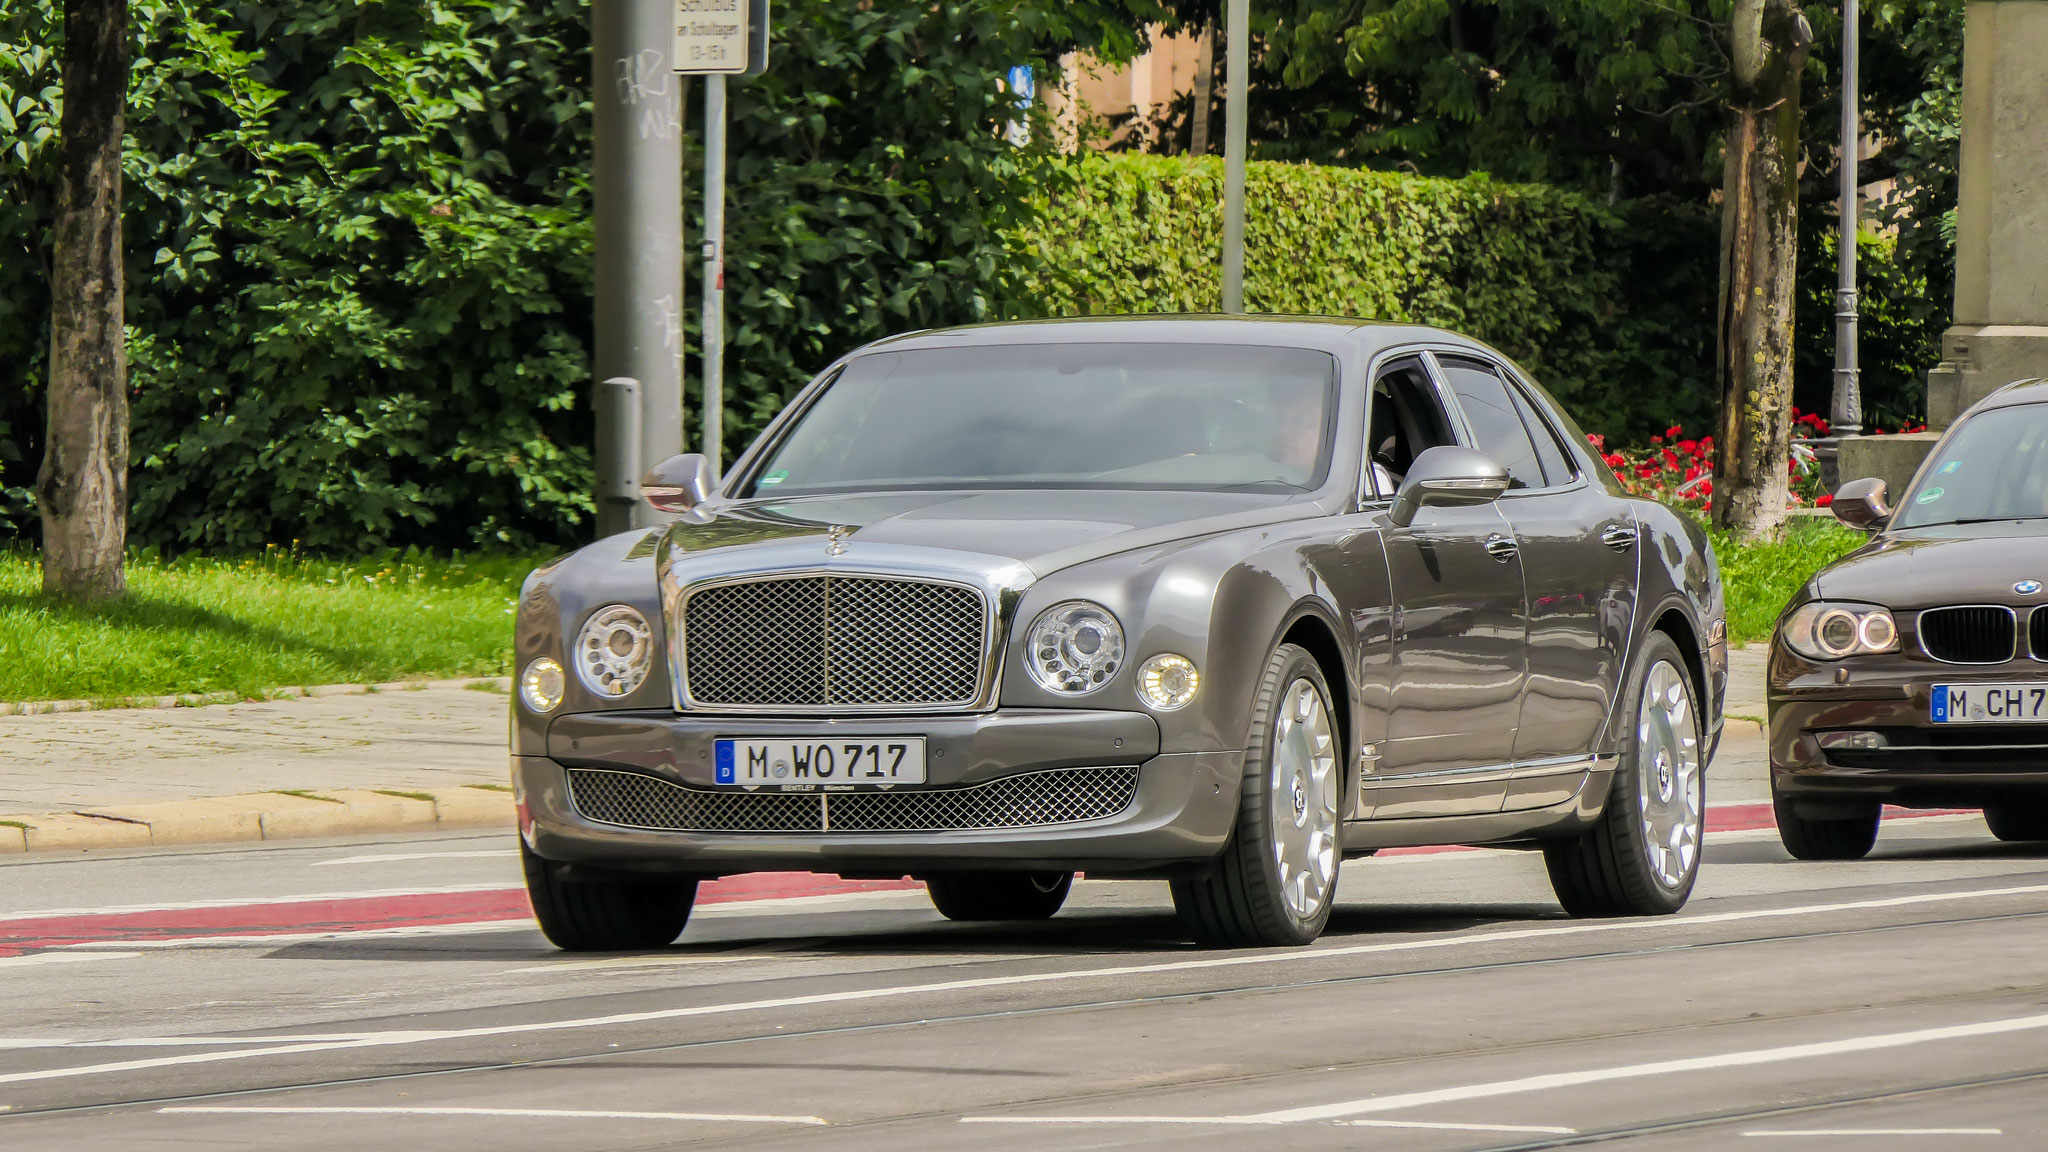 Bentley Mulsanne - M-WO-717